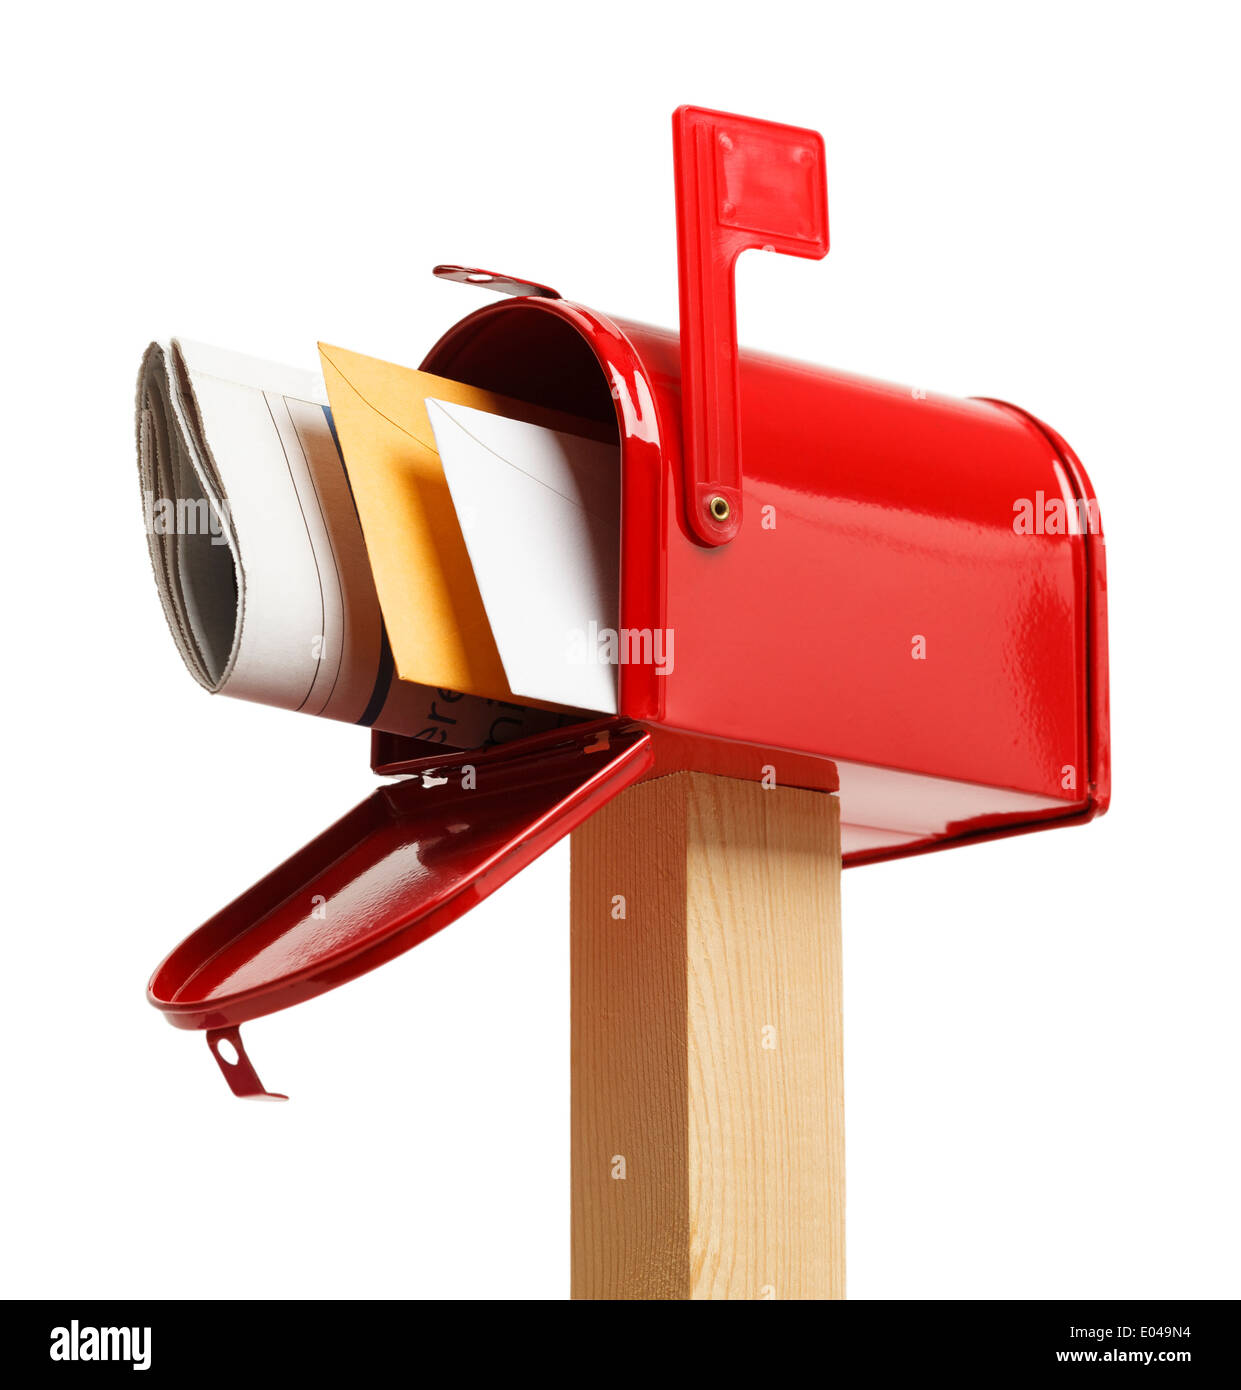 Red Mailbox with mail Isolated on White Background. - Stock Image